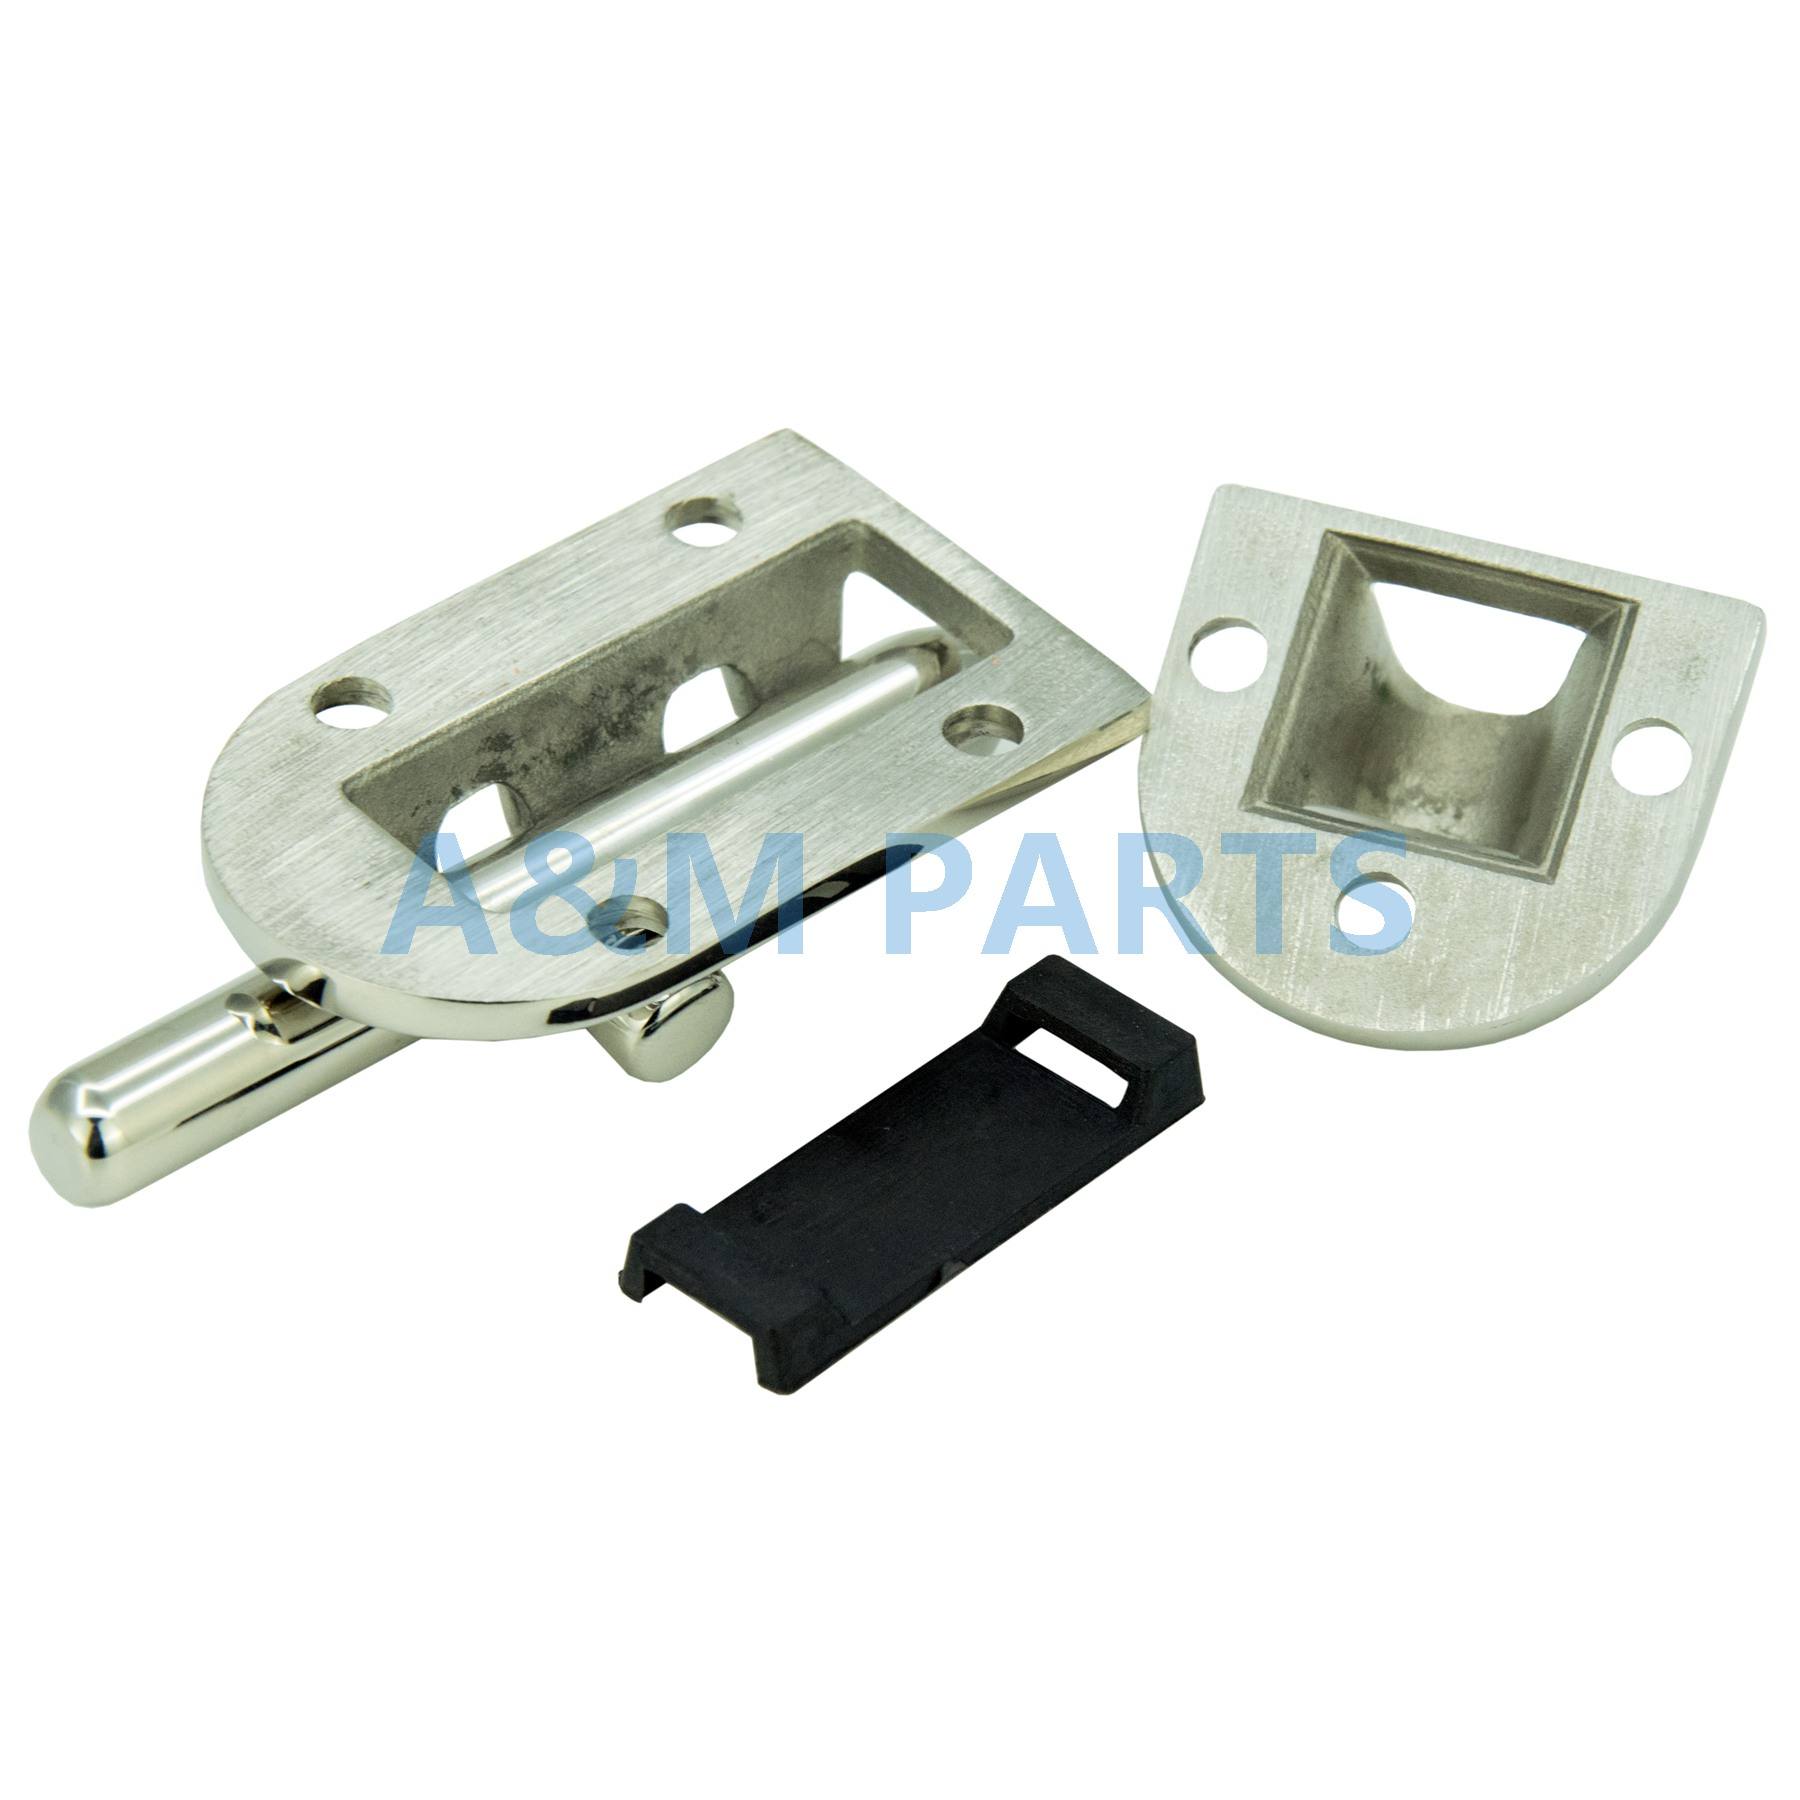 dp latch amazon stainless bolt amarine com heavy lock doors made door duty marine barrel boat steel